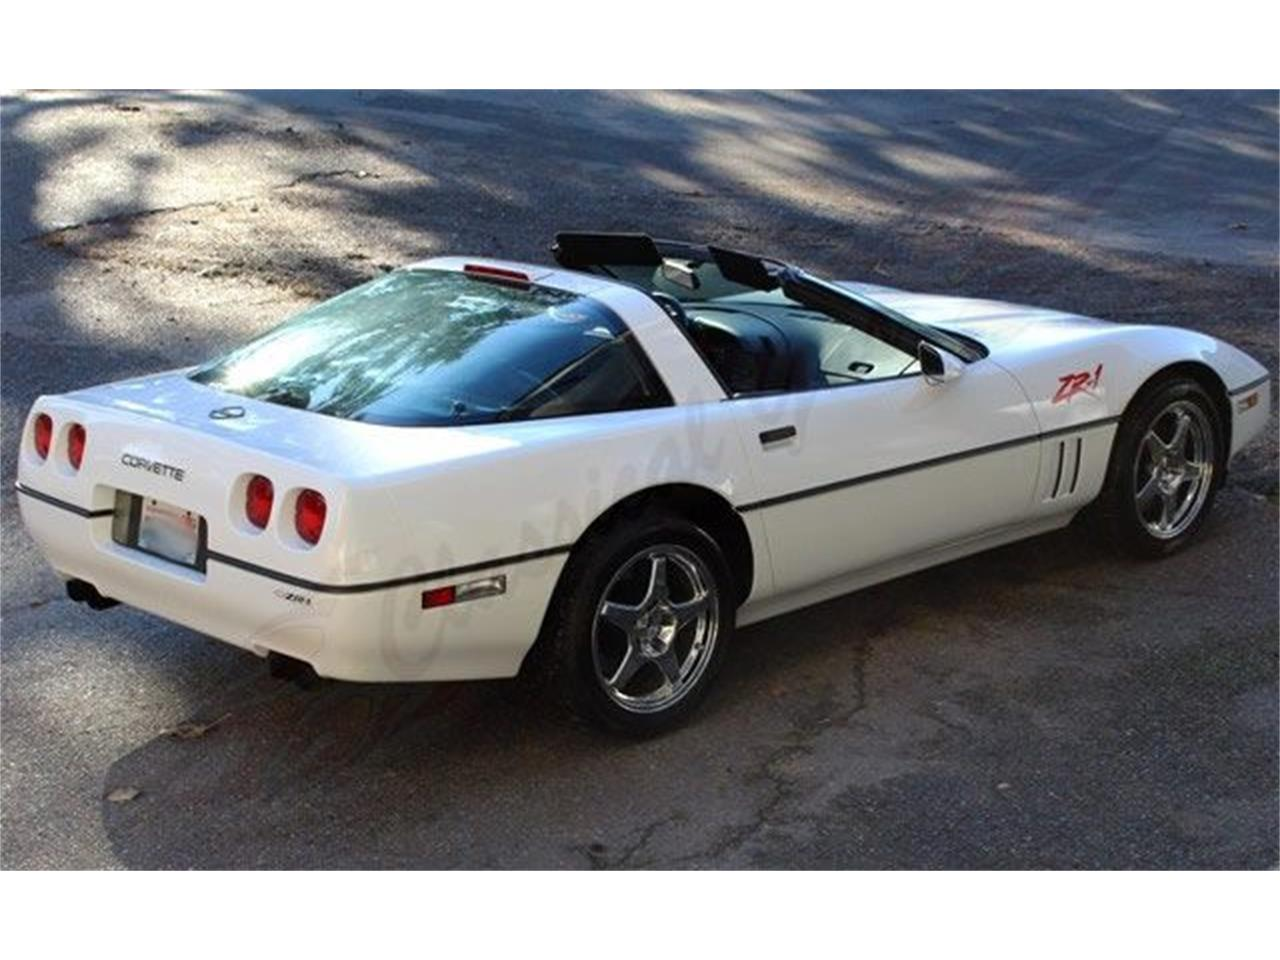 Large Picture of 1990 Corvette ZR1 located in Texas - $27,900.00 Offered by Classical Gas Enterprises - MA3W